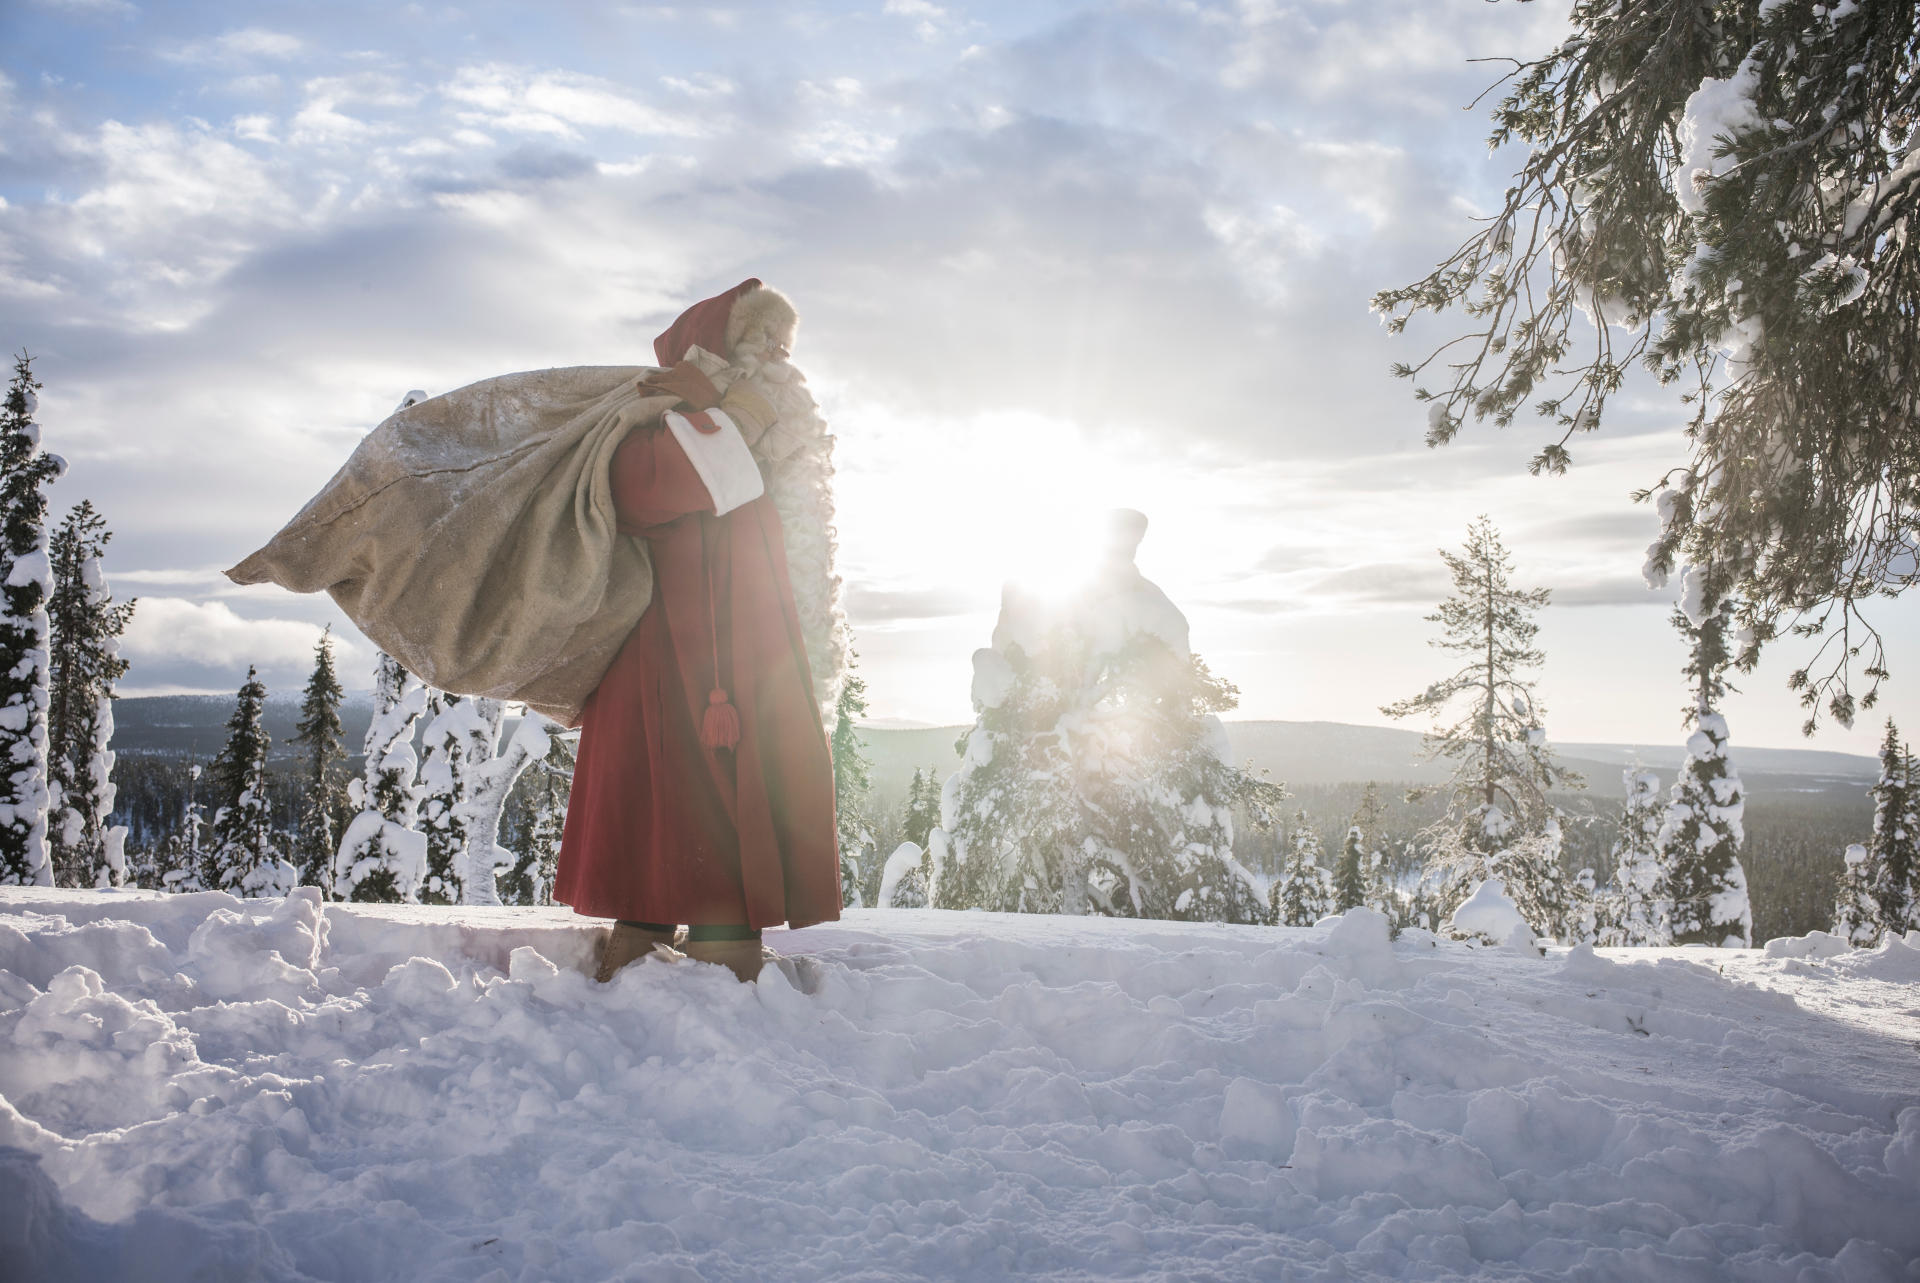 How To Write A Letter To Santa Claus Visit Finnish Lapland